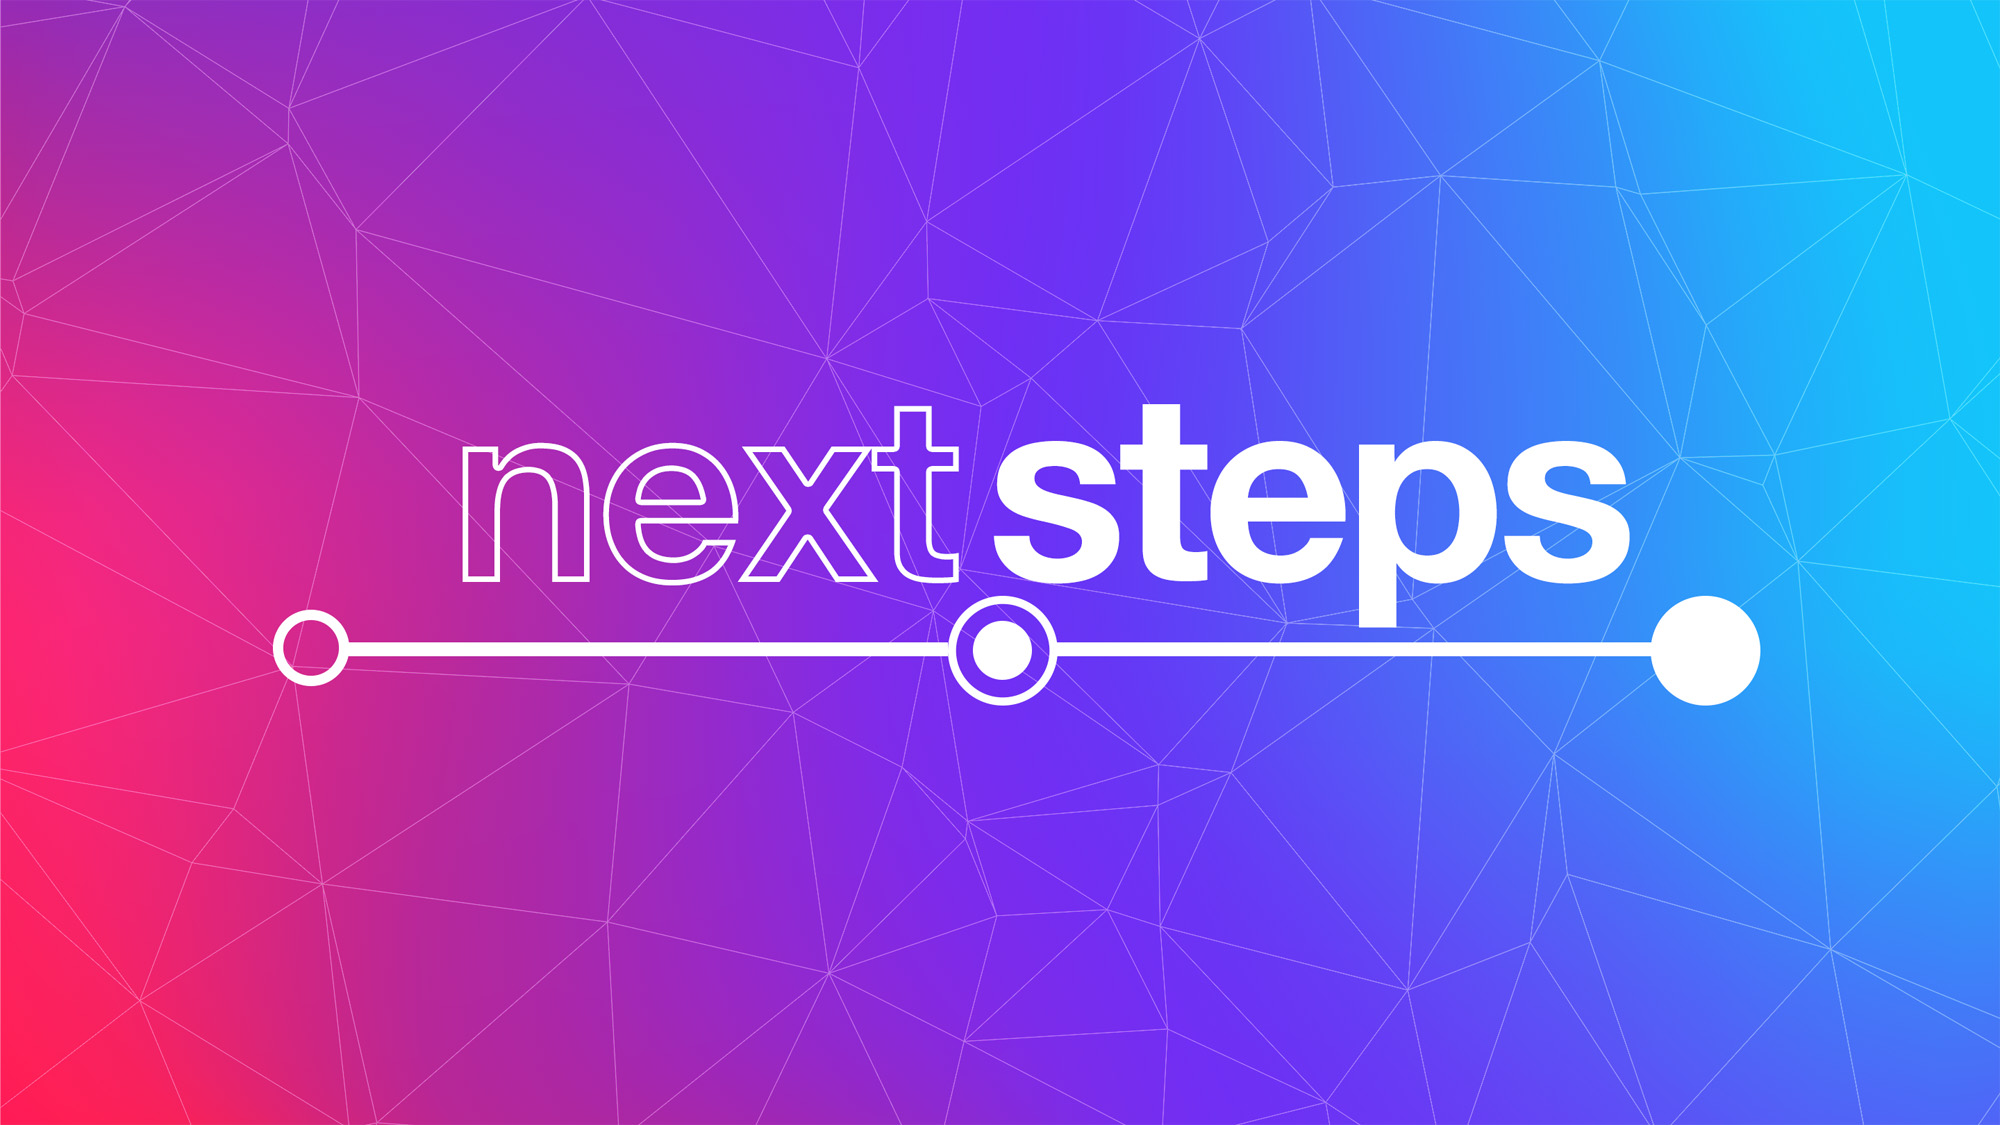 next_steps-title-1-Wide 16x9.jpg